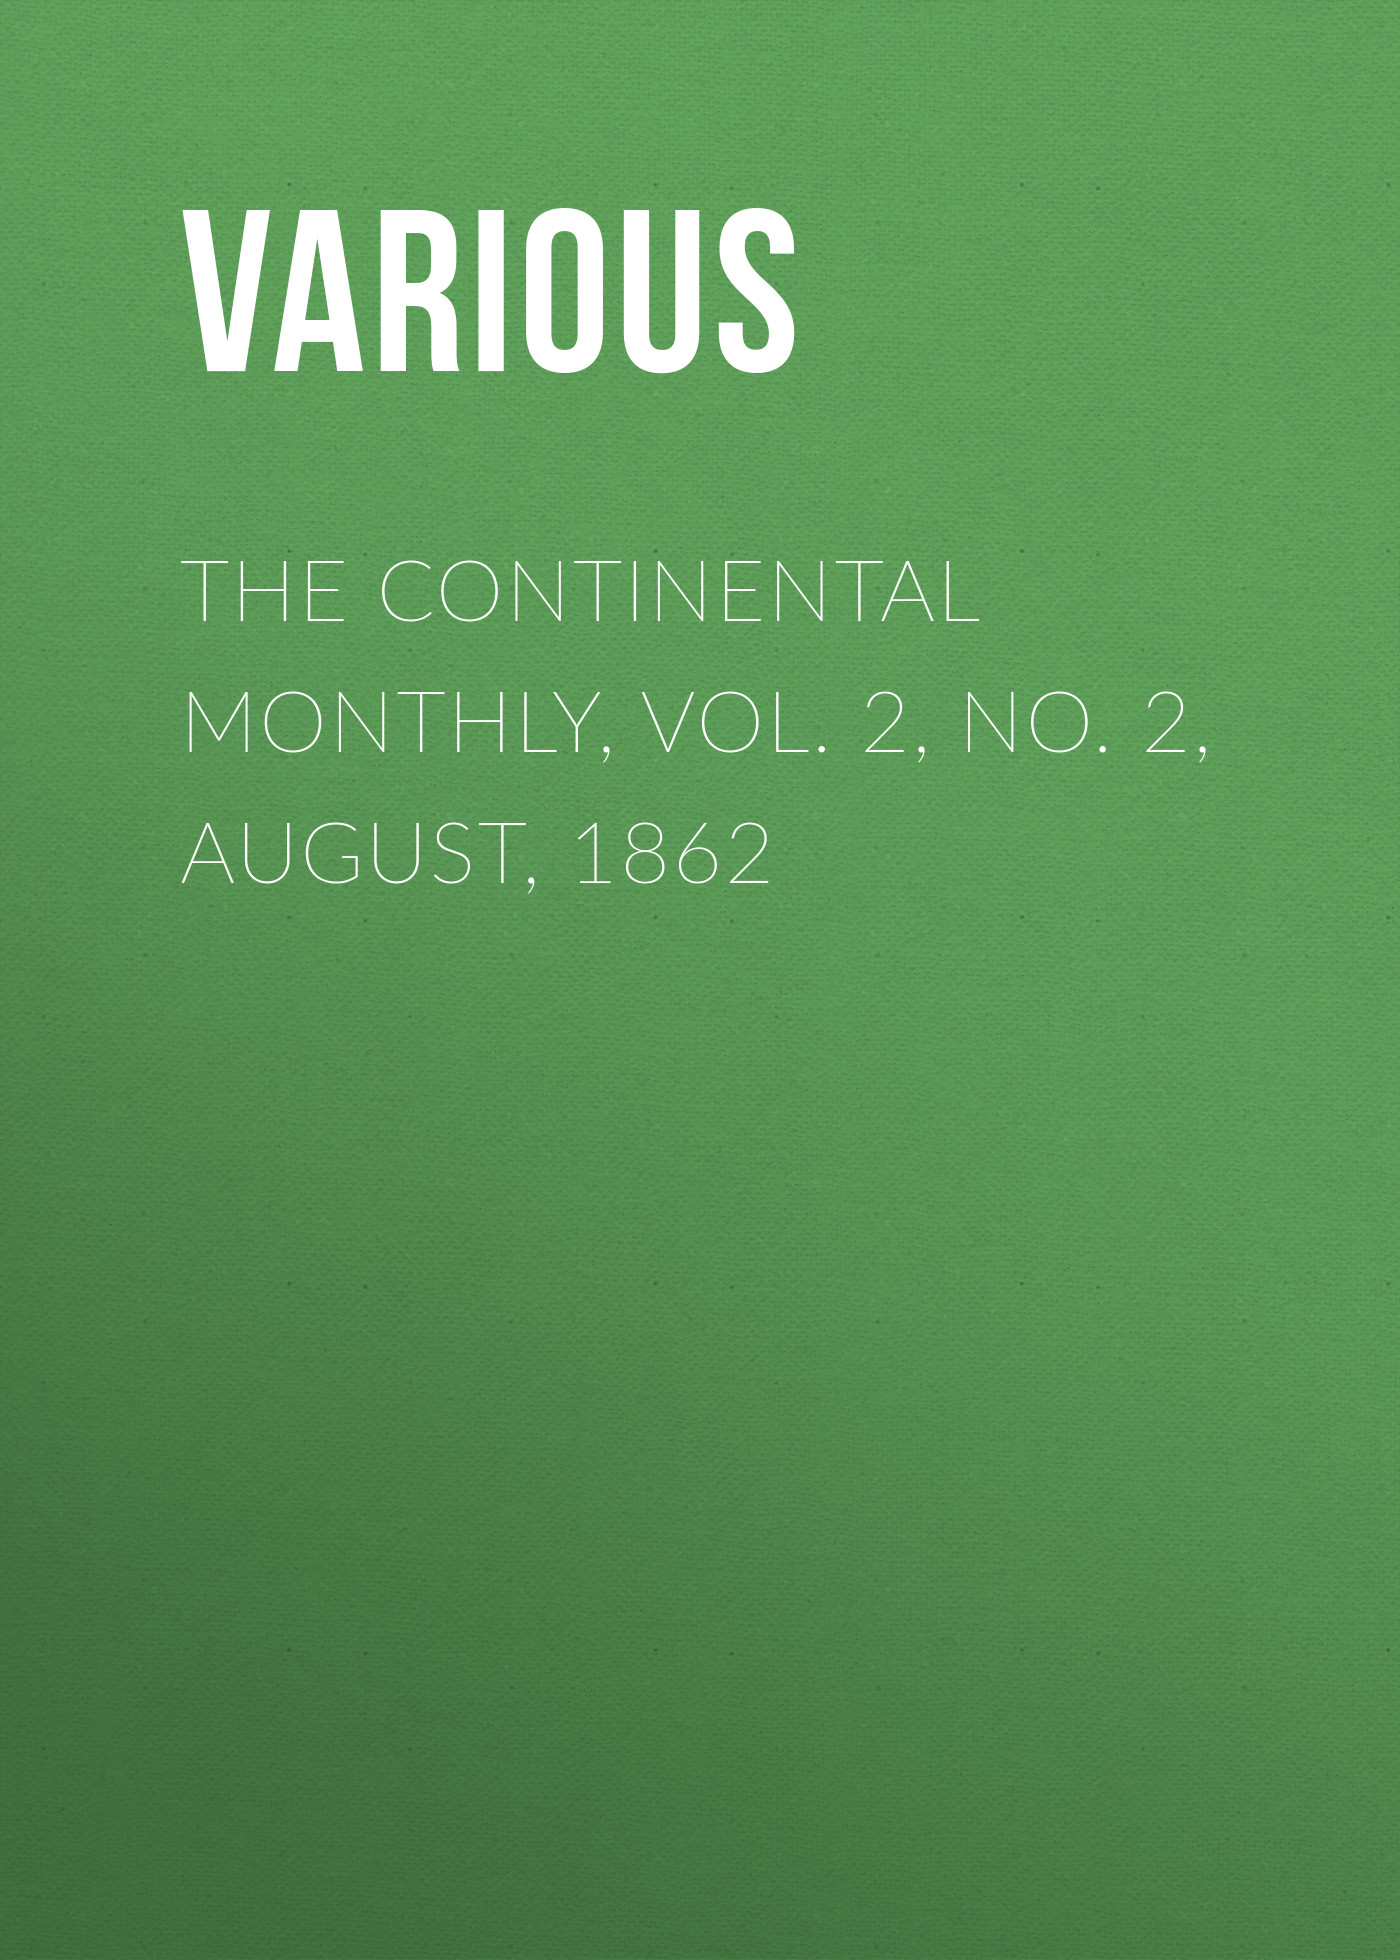 Various The Continental Monthly, Vol. 2, No. 2, August, 1862 ebenstein erisa case digest 2 vol set 1992 supplement no 2 loose leaf pr only